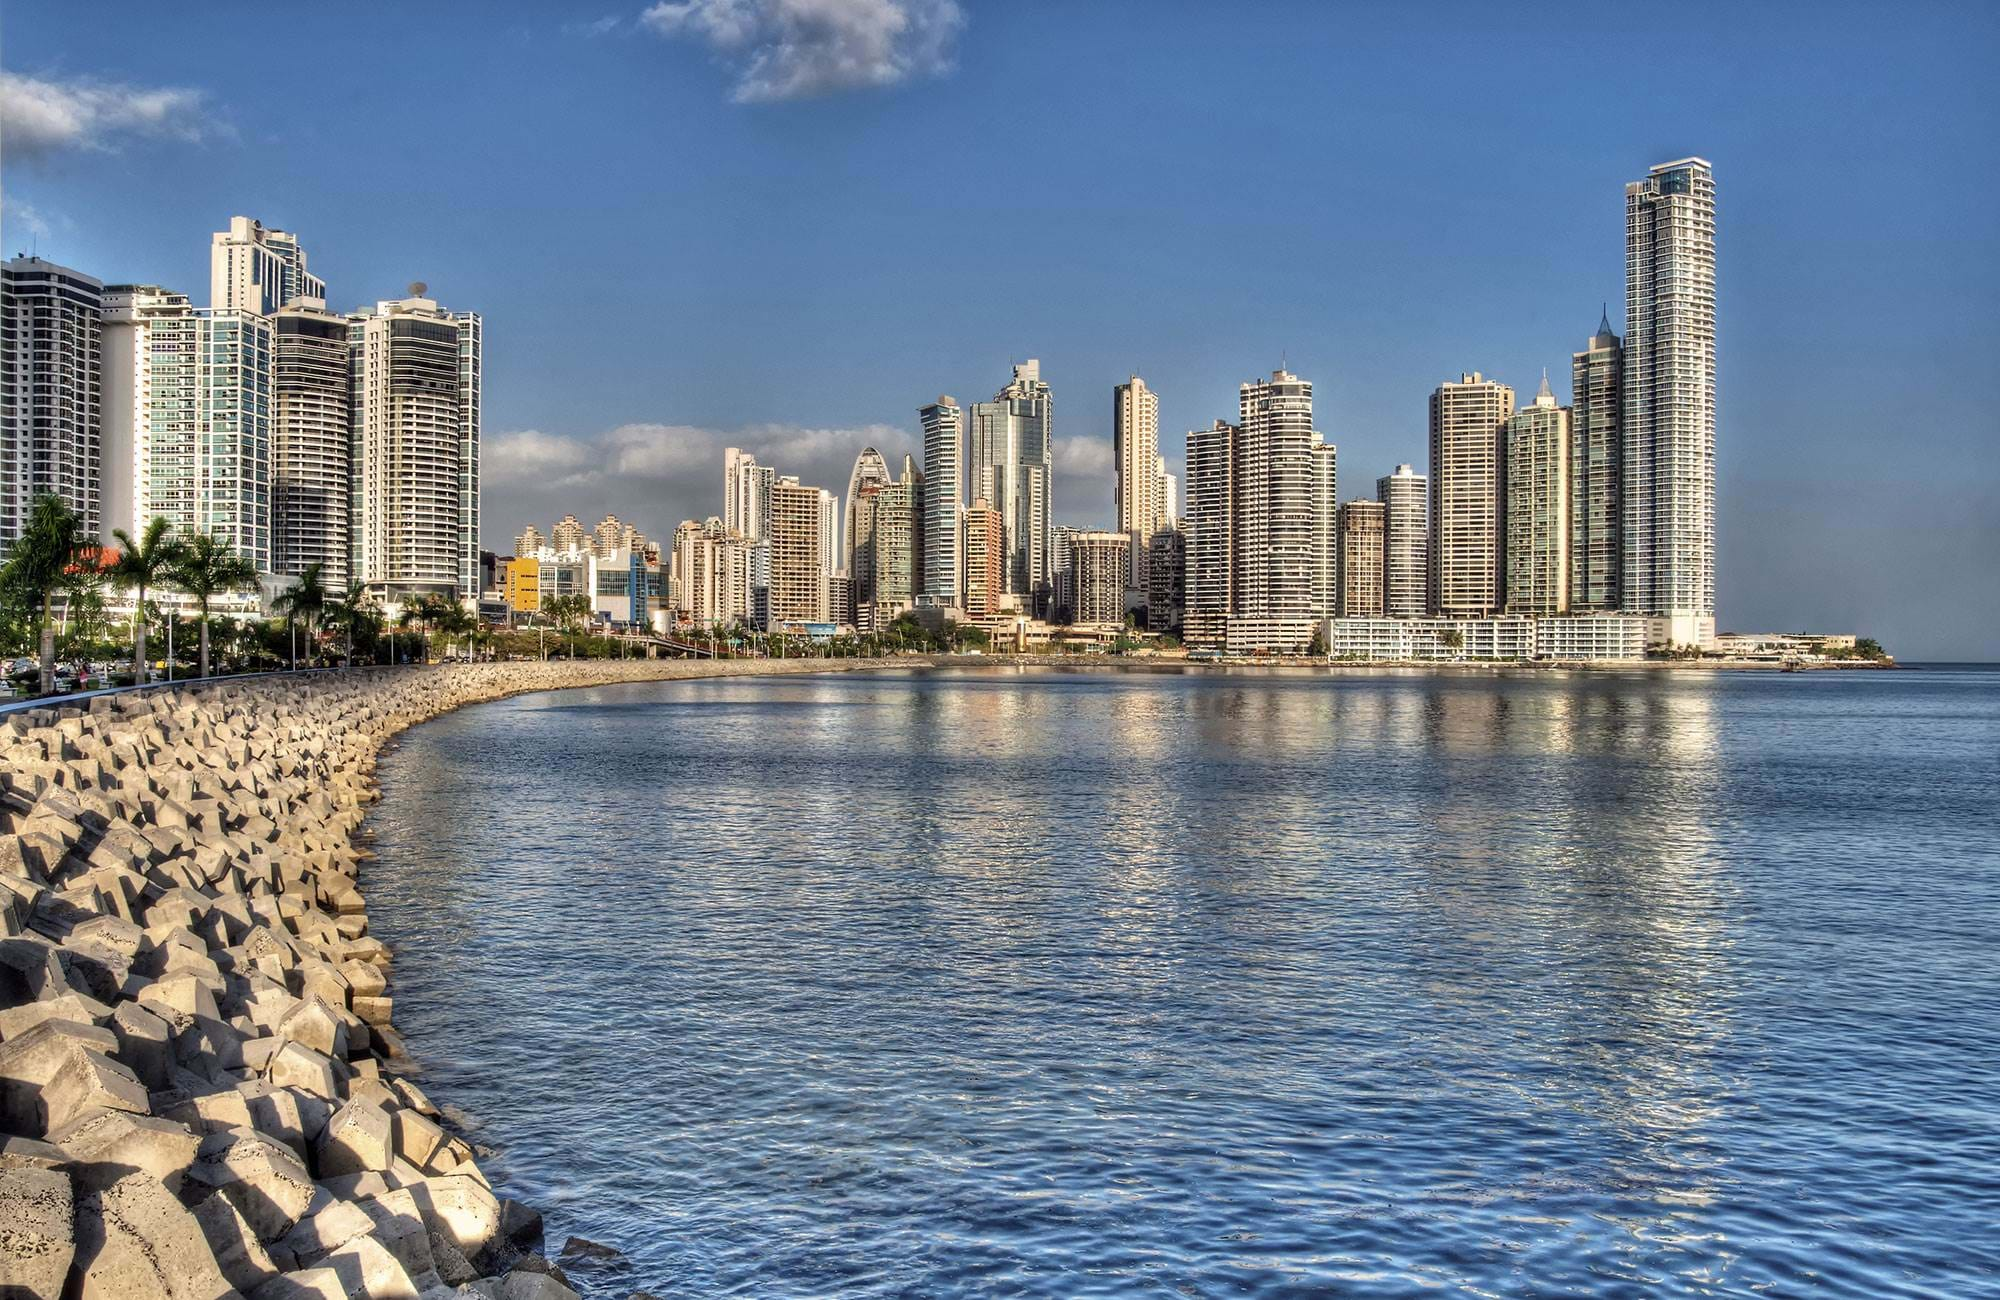 Panama Bay in Panama city. A view of the modern buildings and skyline by the water.